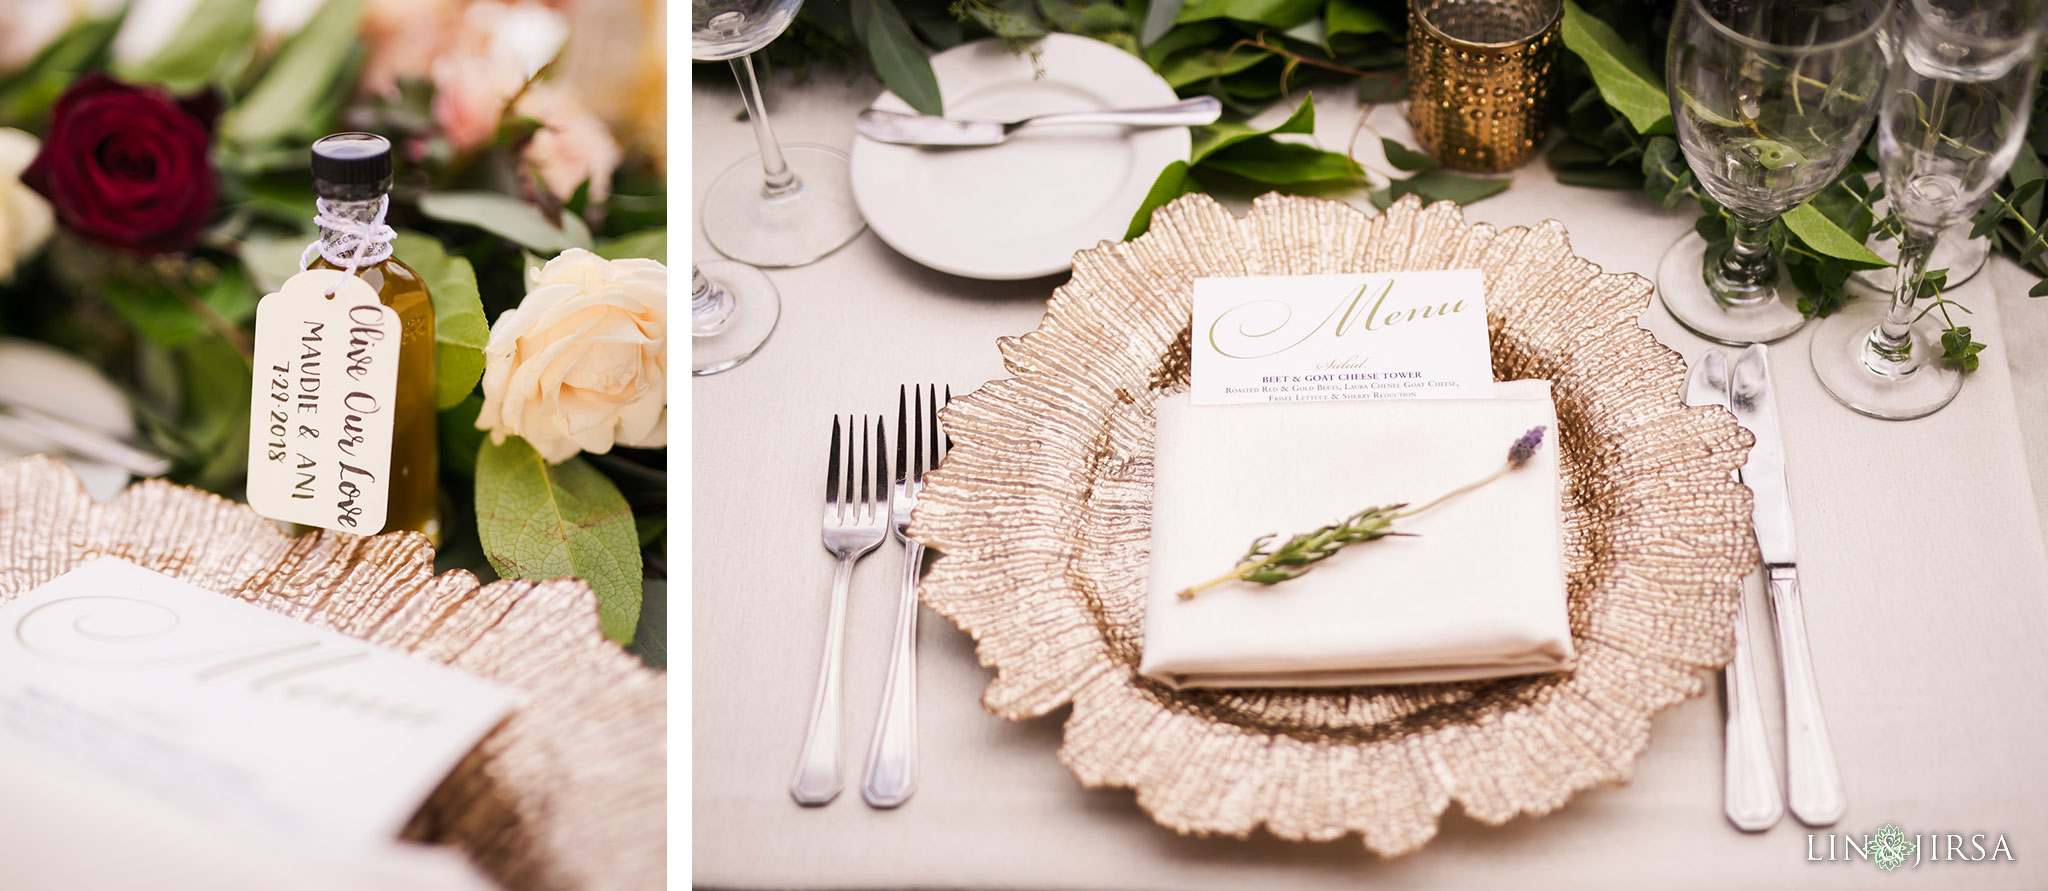 024 casa romantica san clemente wedding reception photography